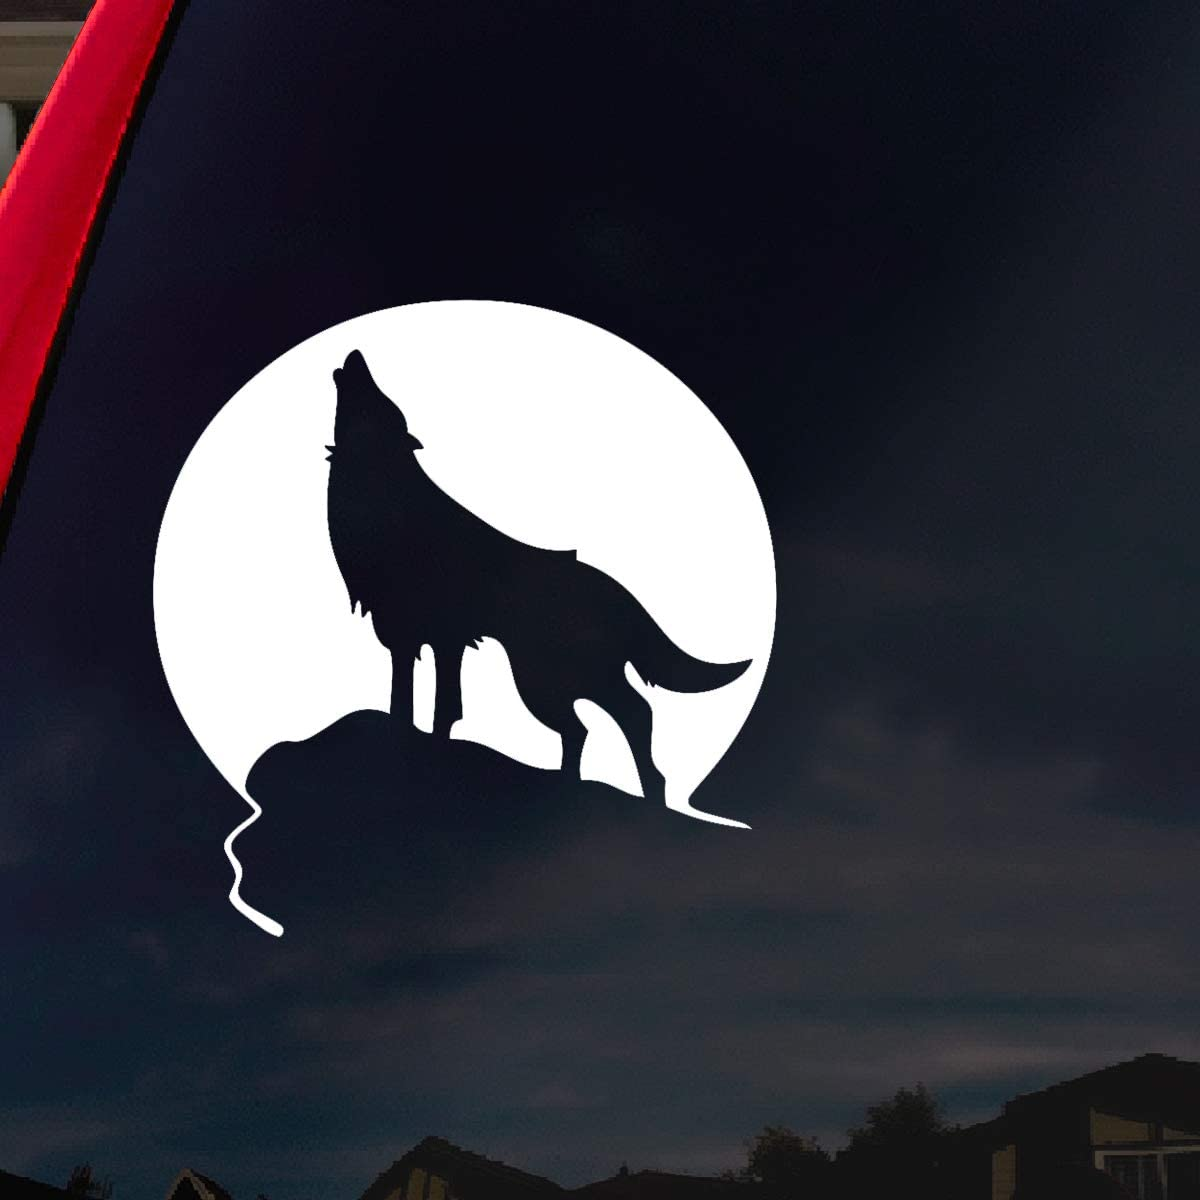 Wolf Howling Black Sticker Car Decal Vinyl Sticker Window Truck Car Vinyl Bumper Sticker Decal 5